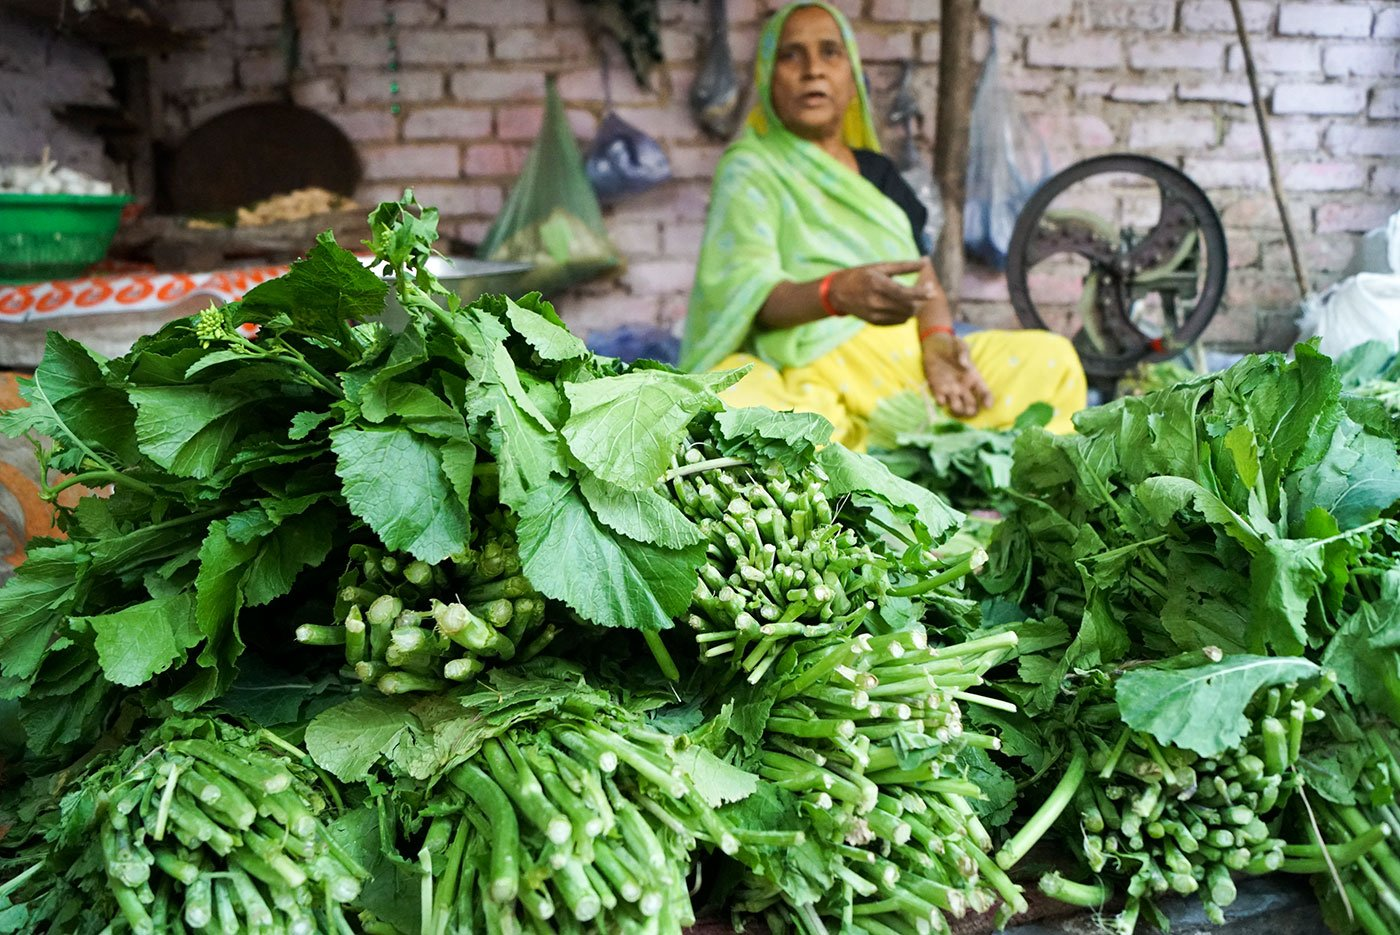 A women selling vegetables in the Delhi market